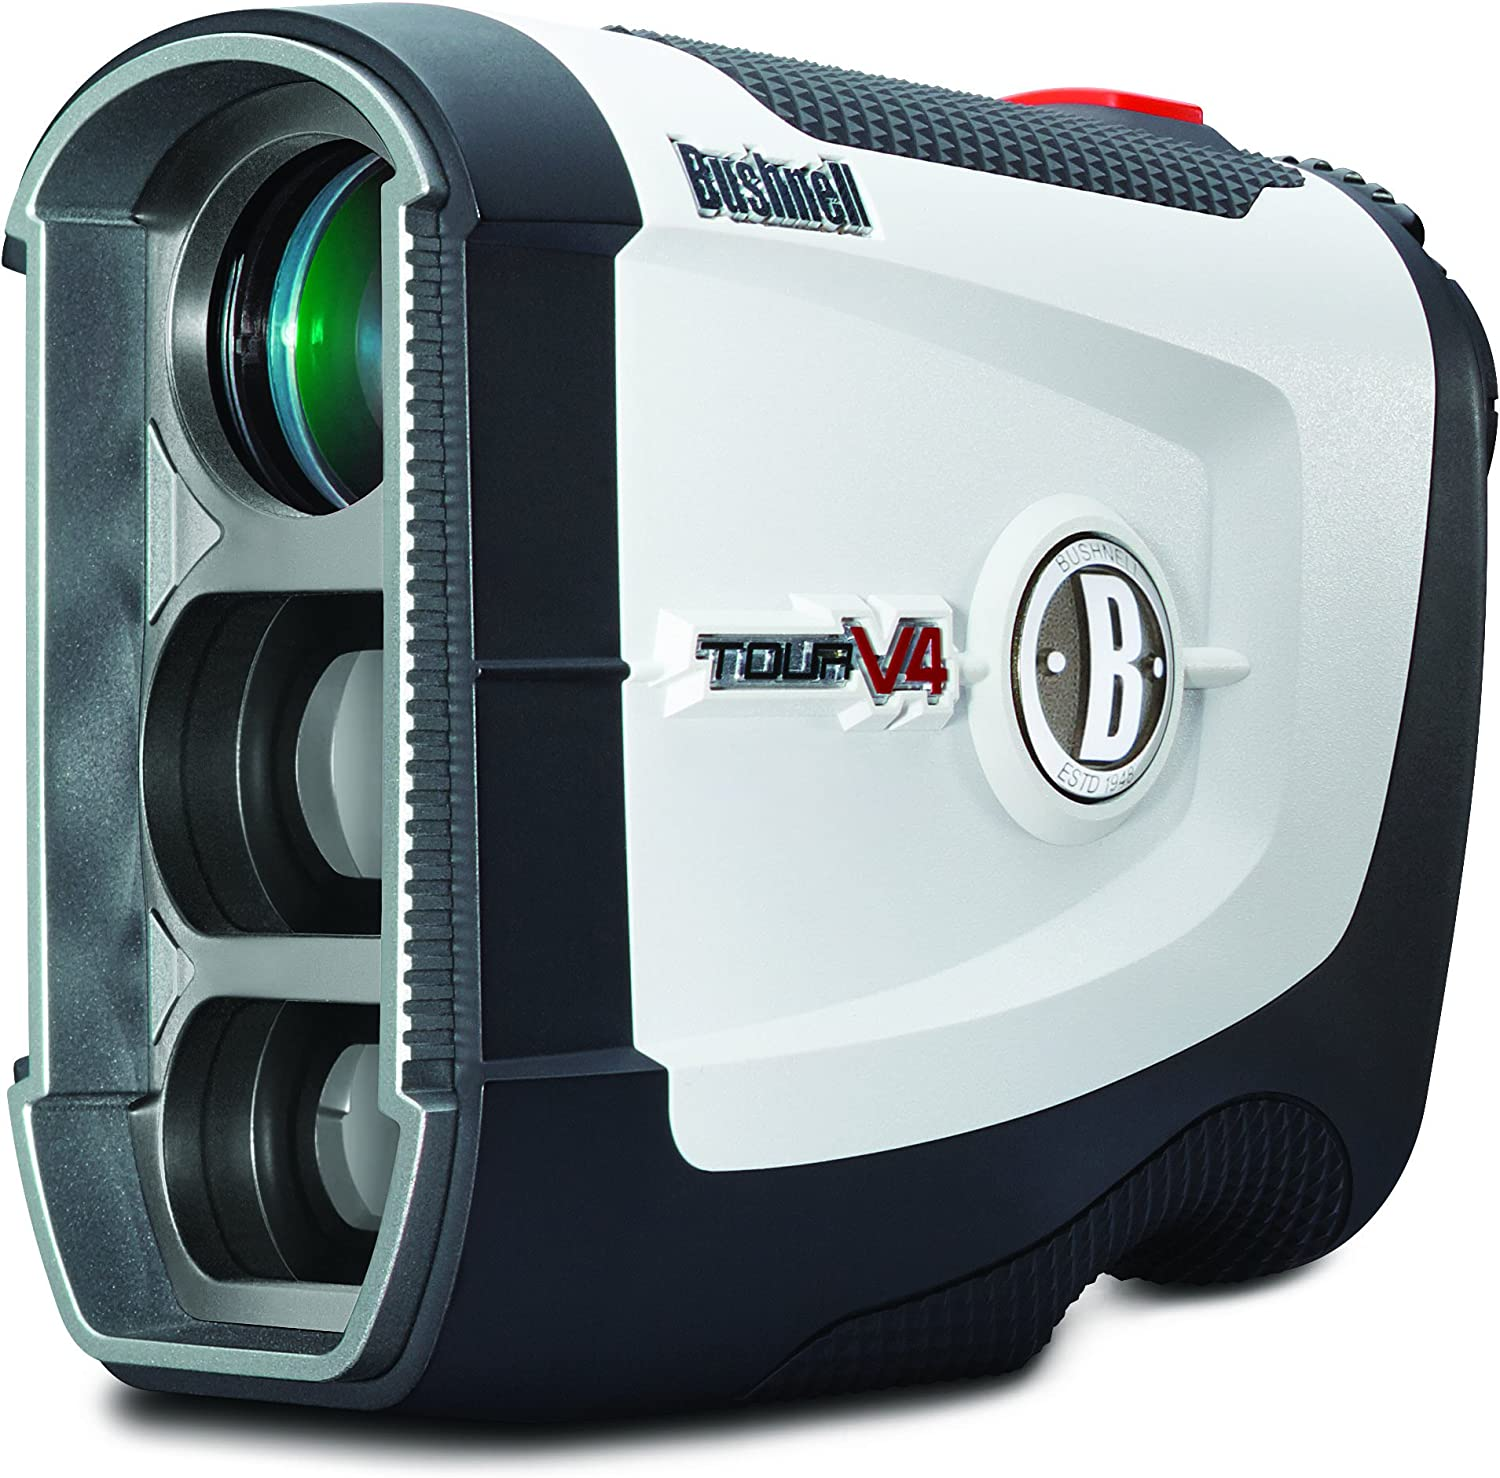 Bushnell Golf 2019 Tour V4 Performance Laser Rangefinder Pinseeker with Jolt Technology